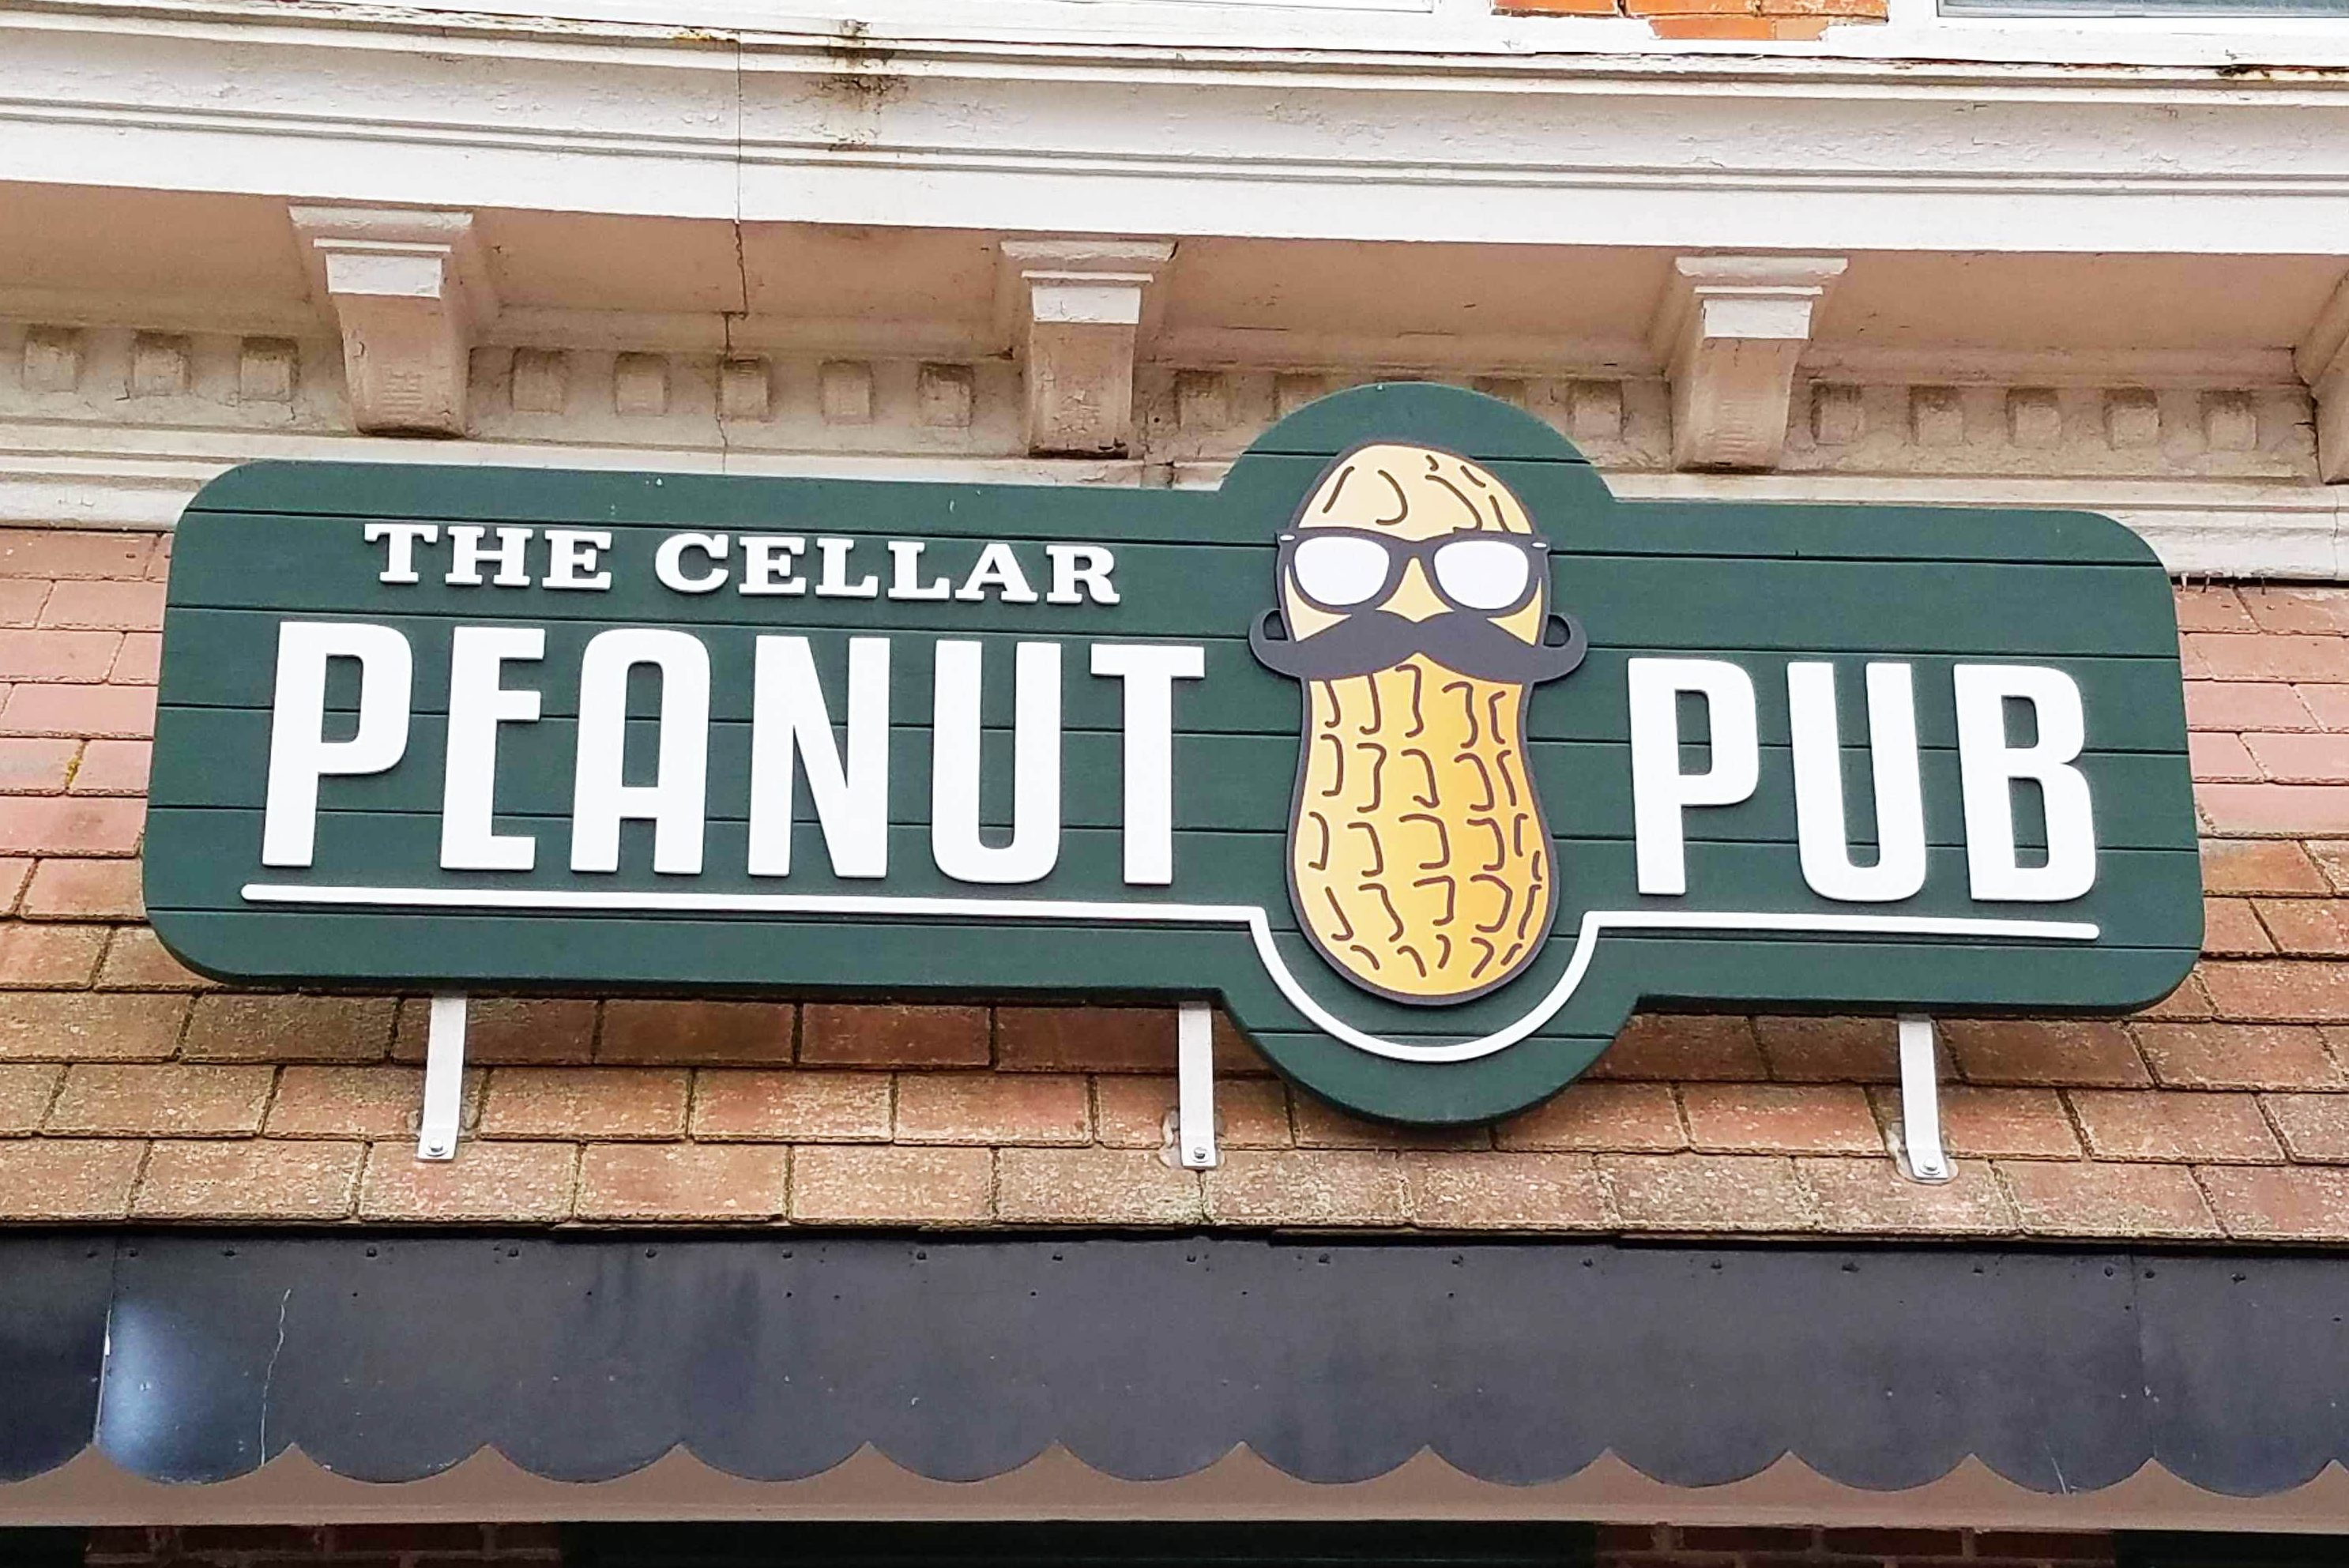 Green storefront sign for The Cellar Peanut Pub featuring peanut logo